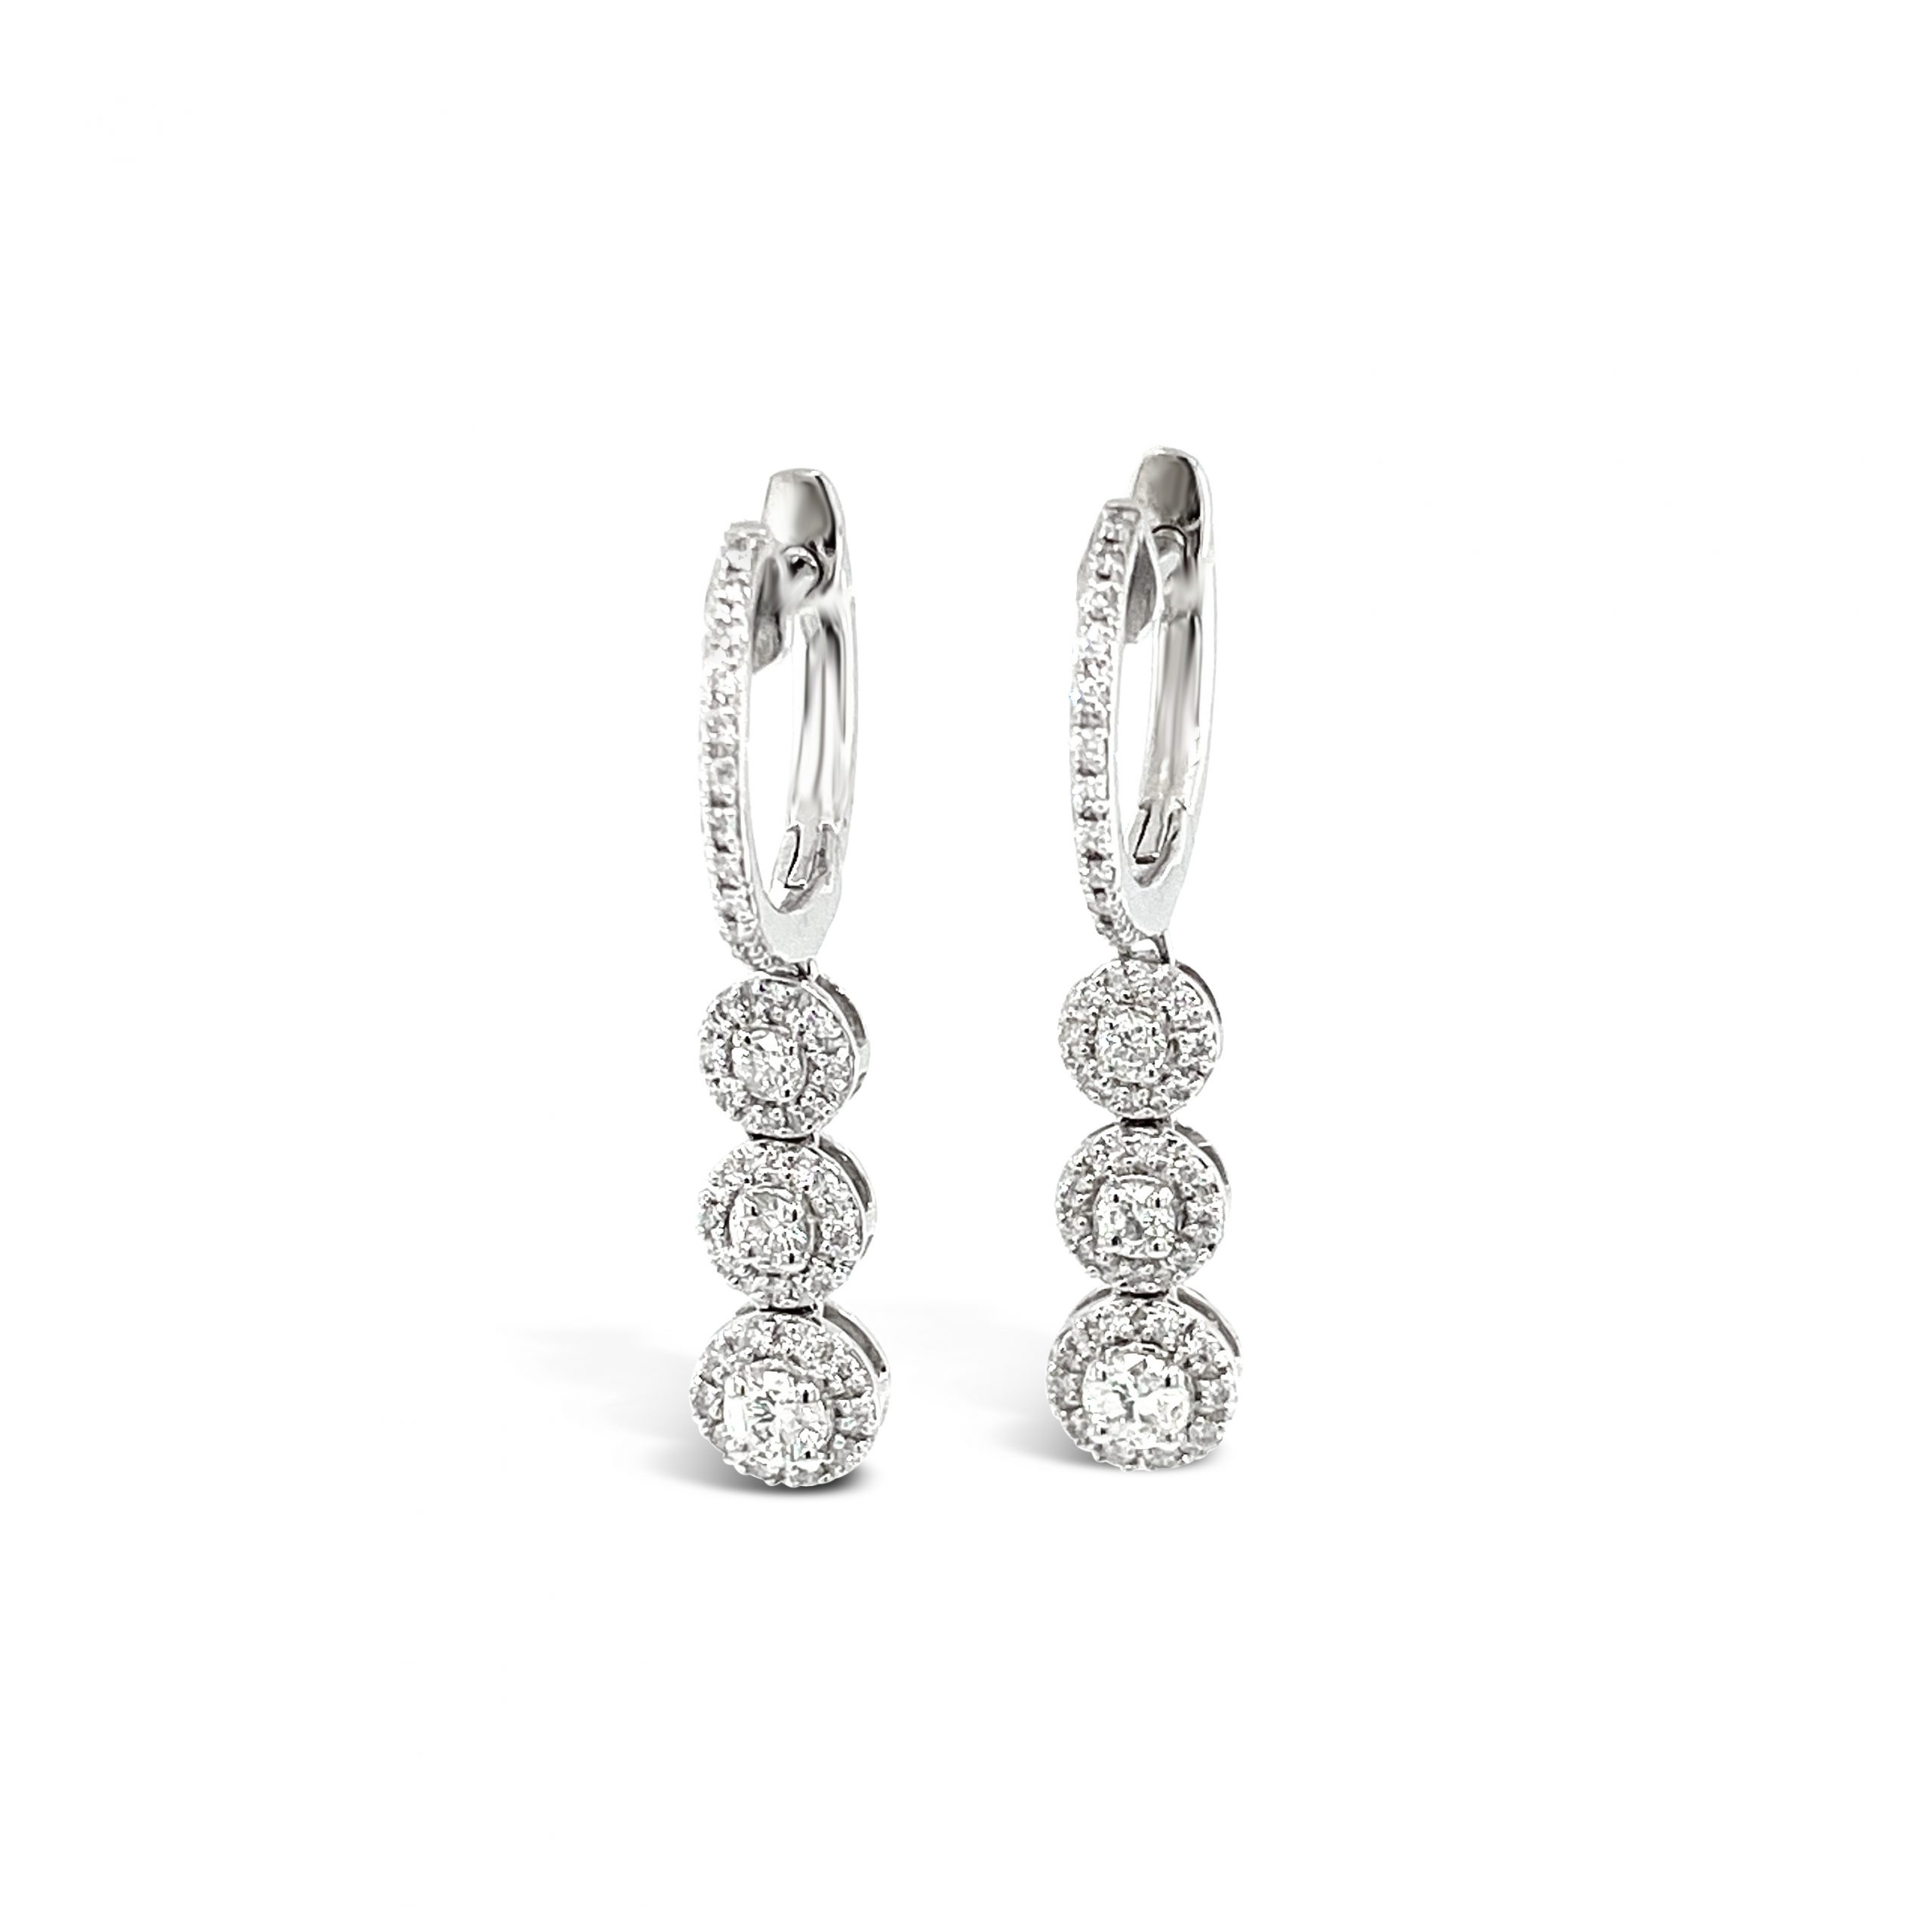 Aretes Triple Illusion con brillantes